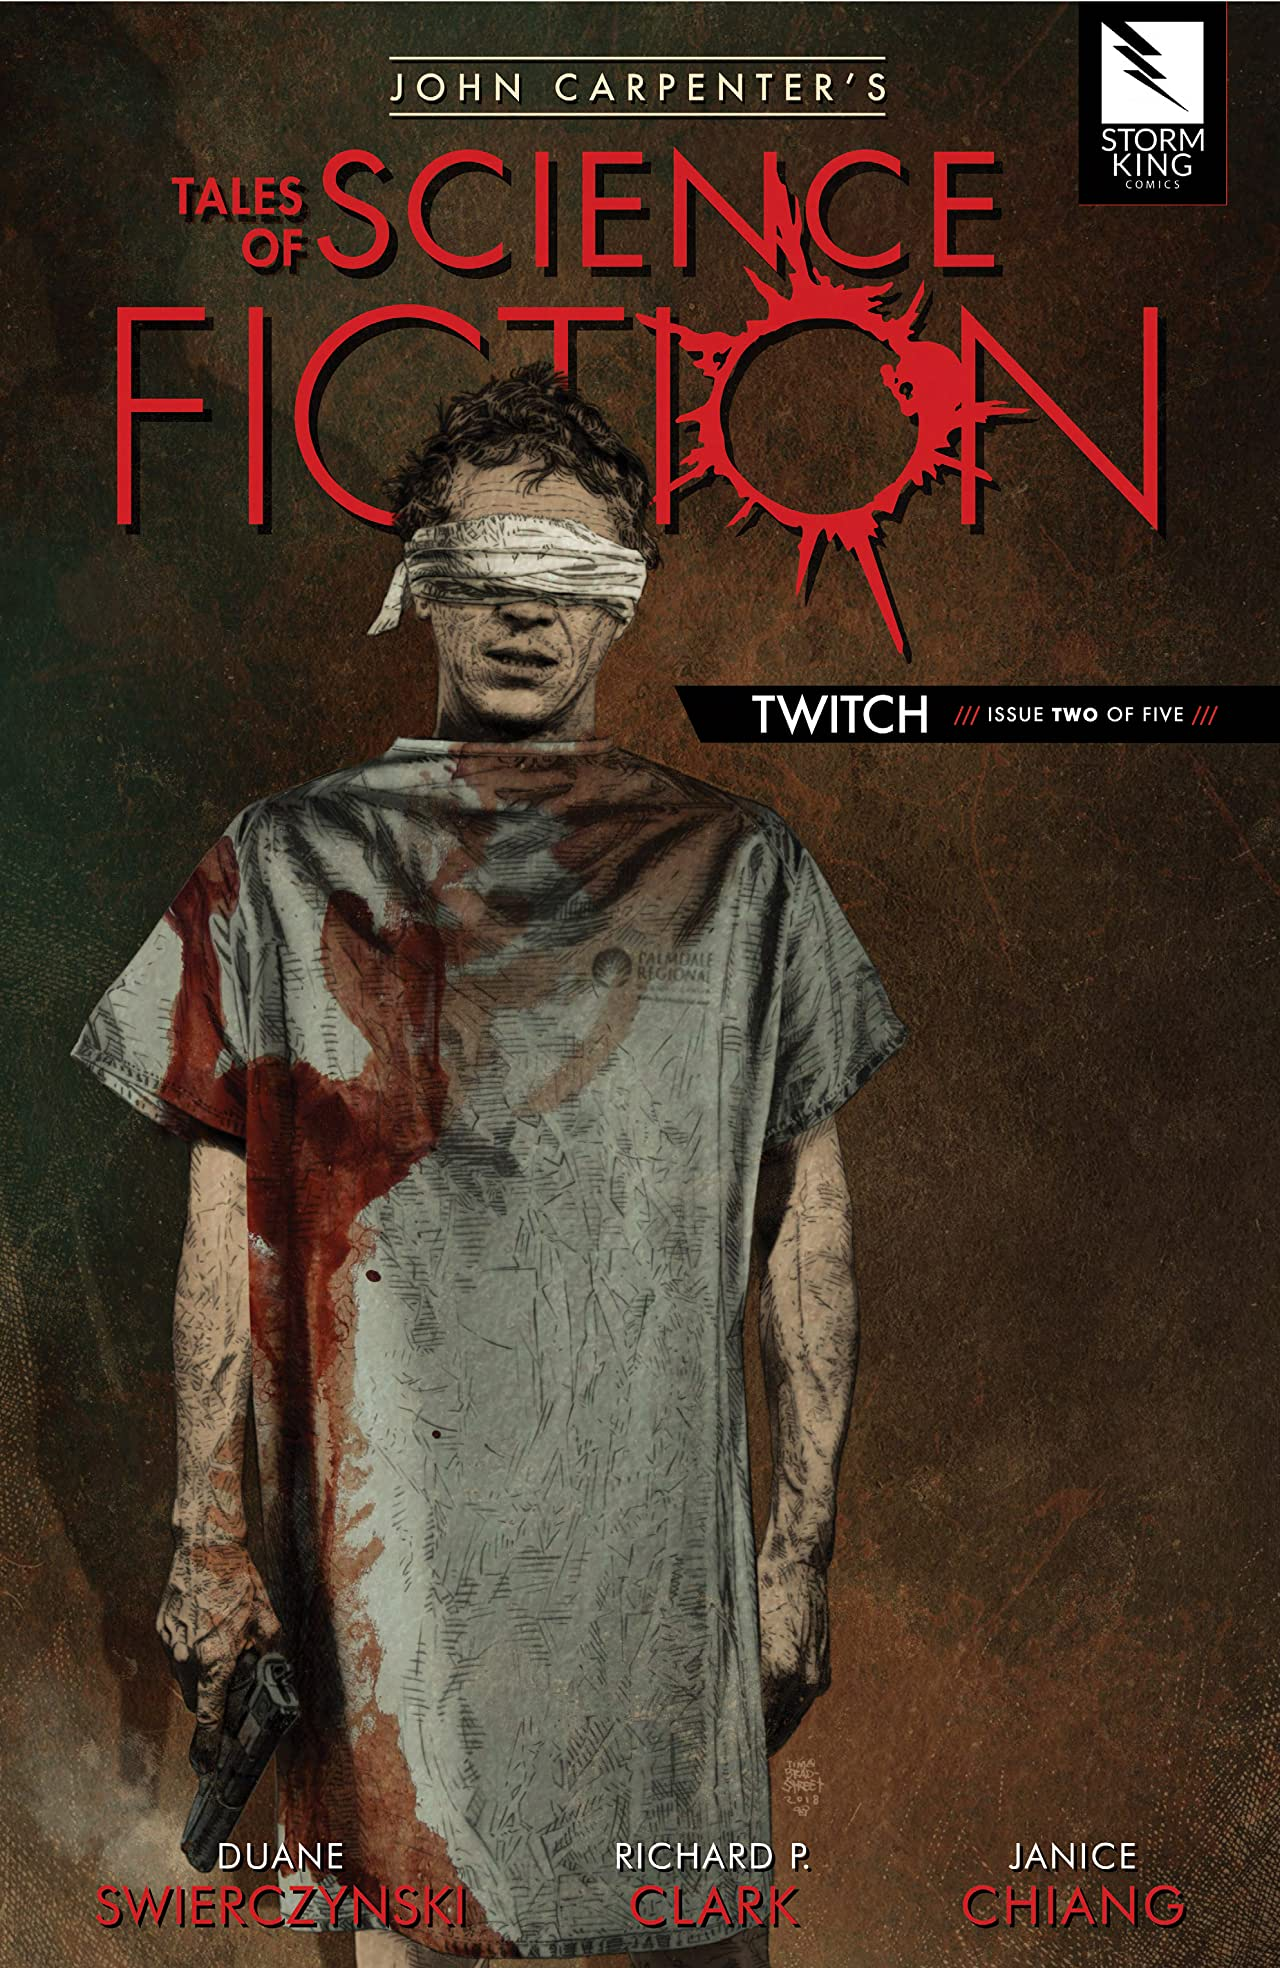 John Carpenter's Tales of Science Fiction: TWITCH #2